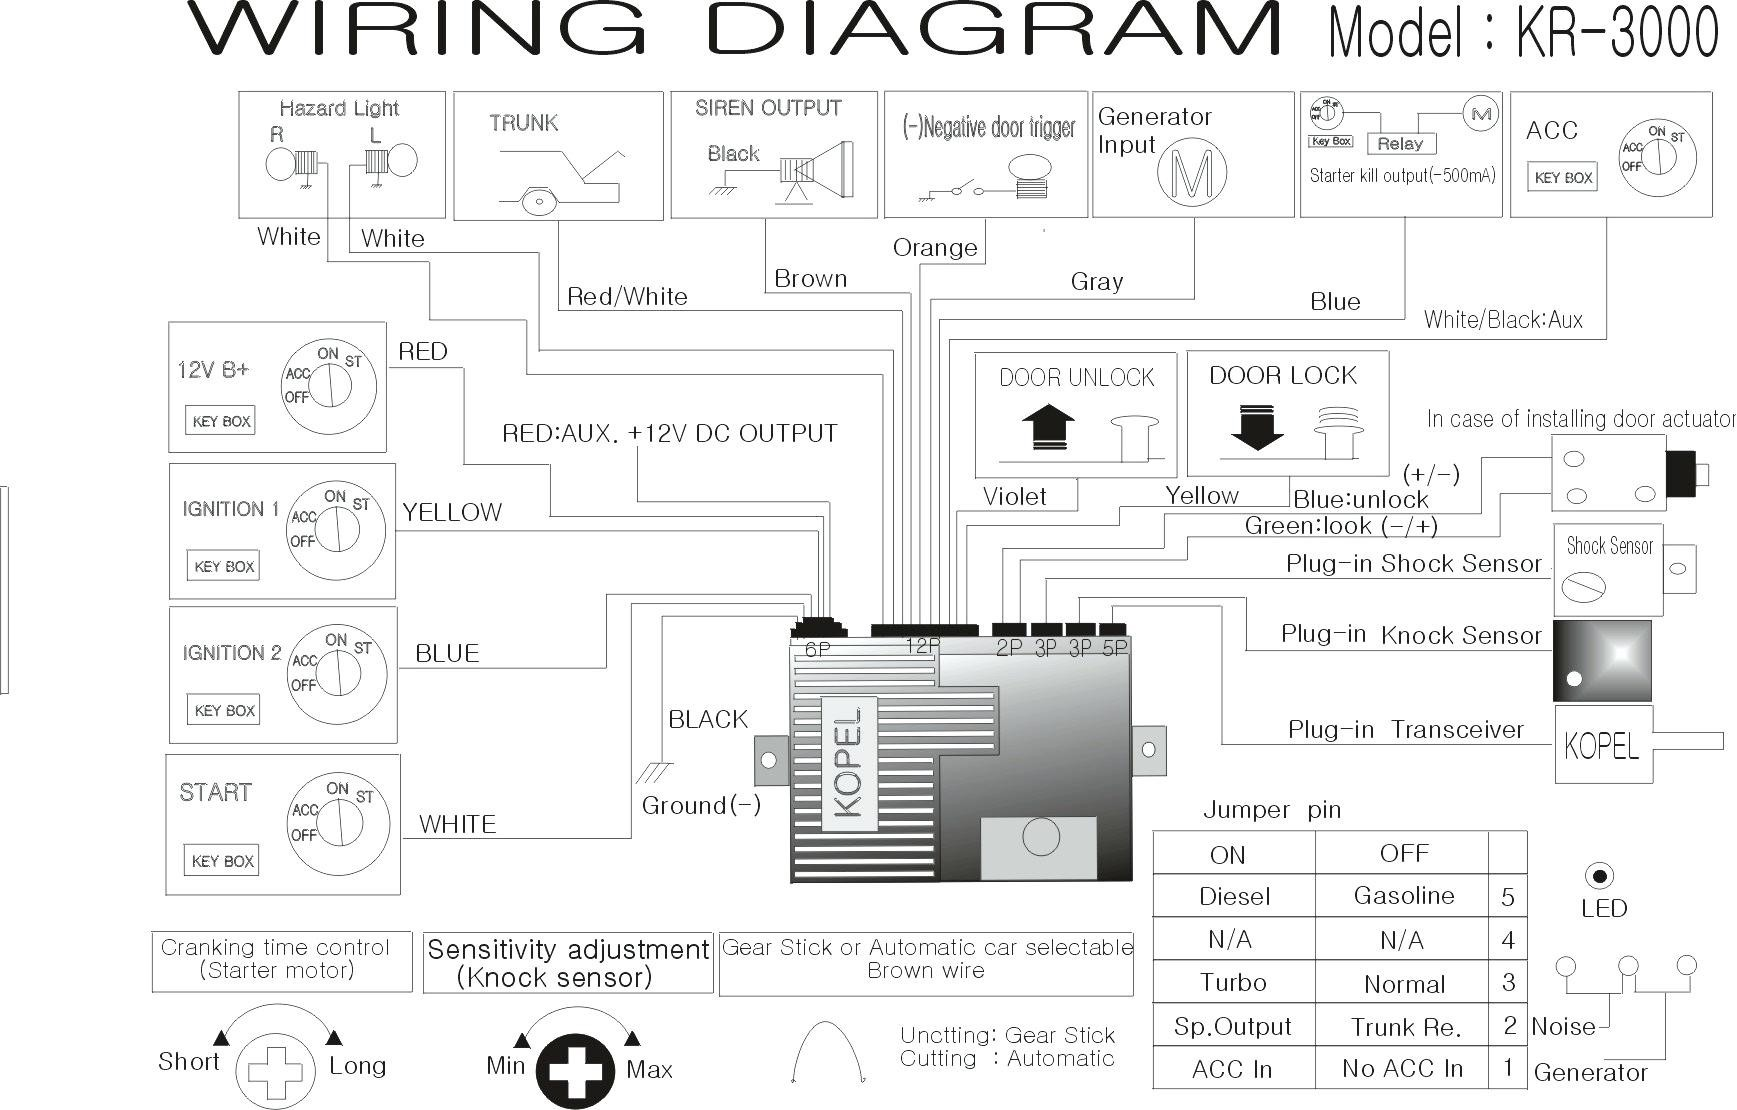 Fire Alarm Wiring Diagram Exelent Fire Alarm Connection Diagram Collection Electrical Of Fire Alarm Wiring Diagram